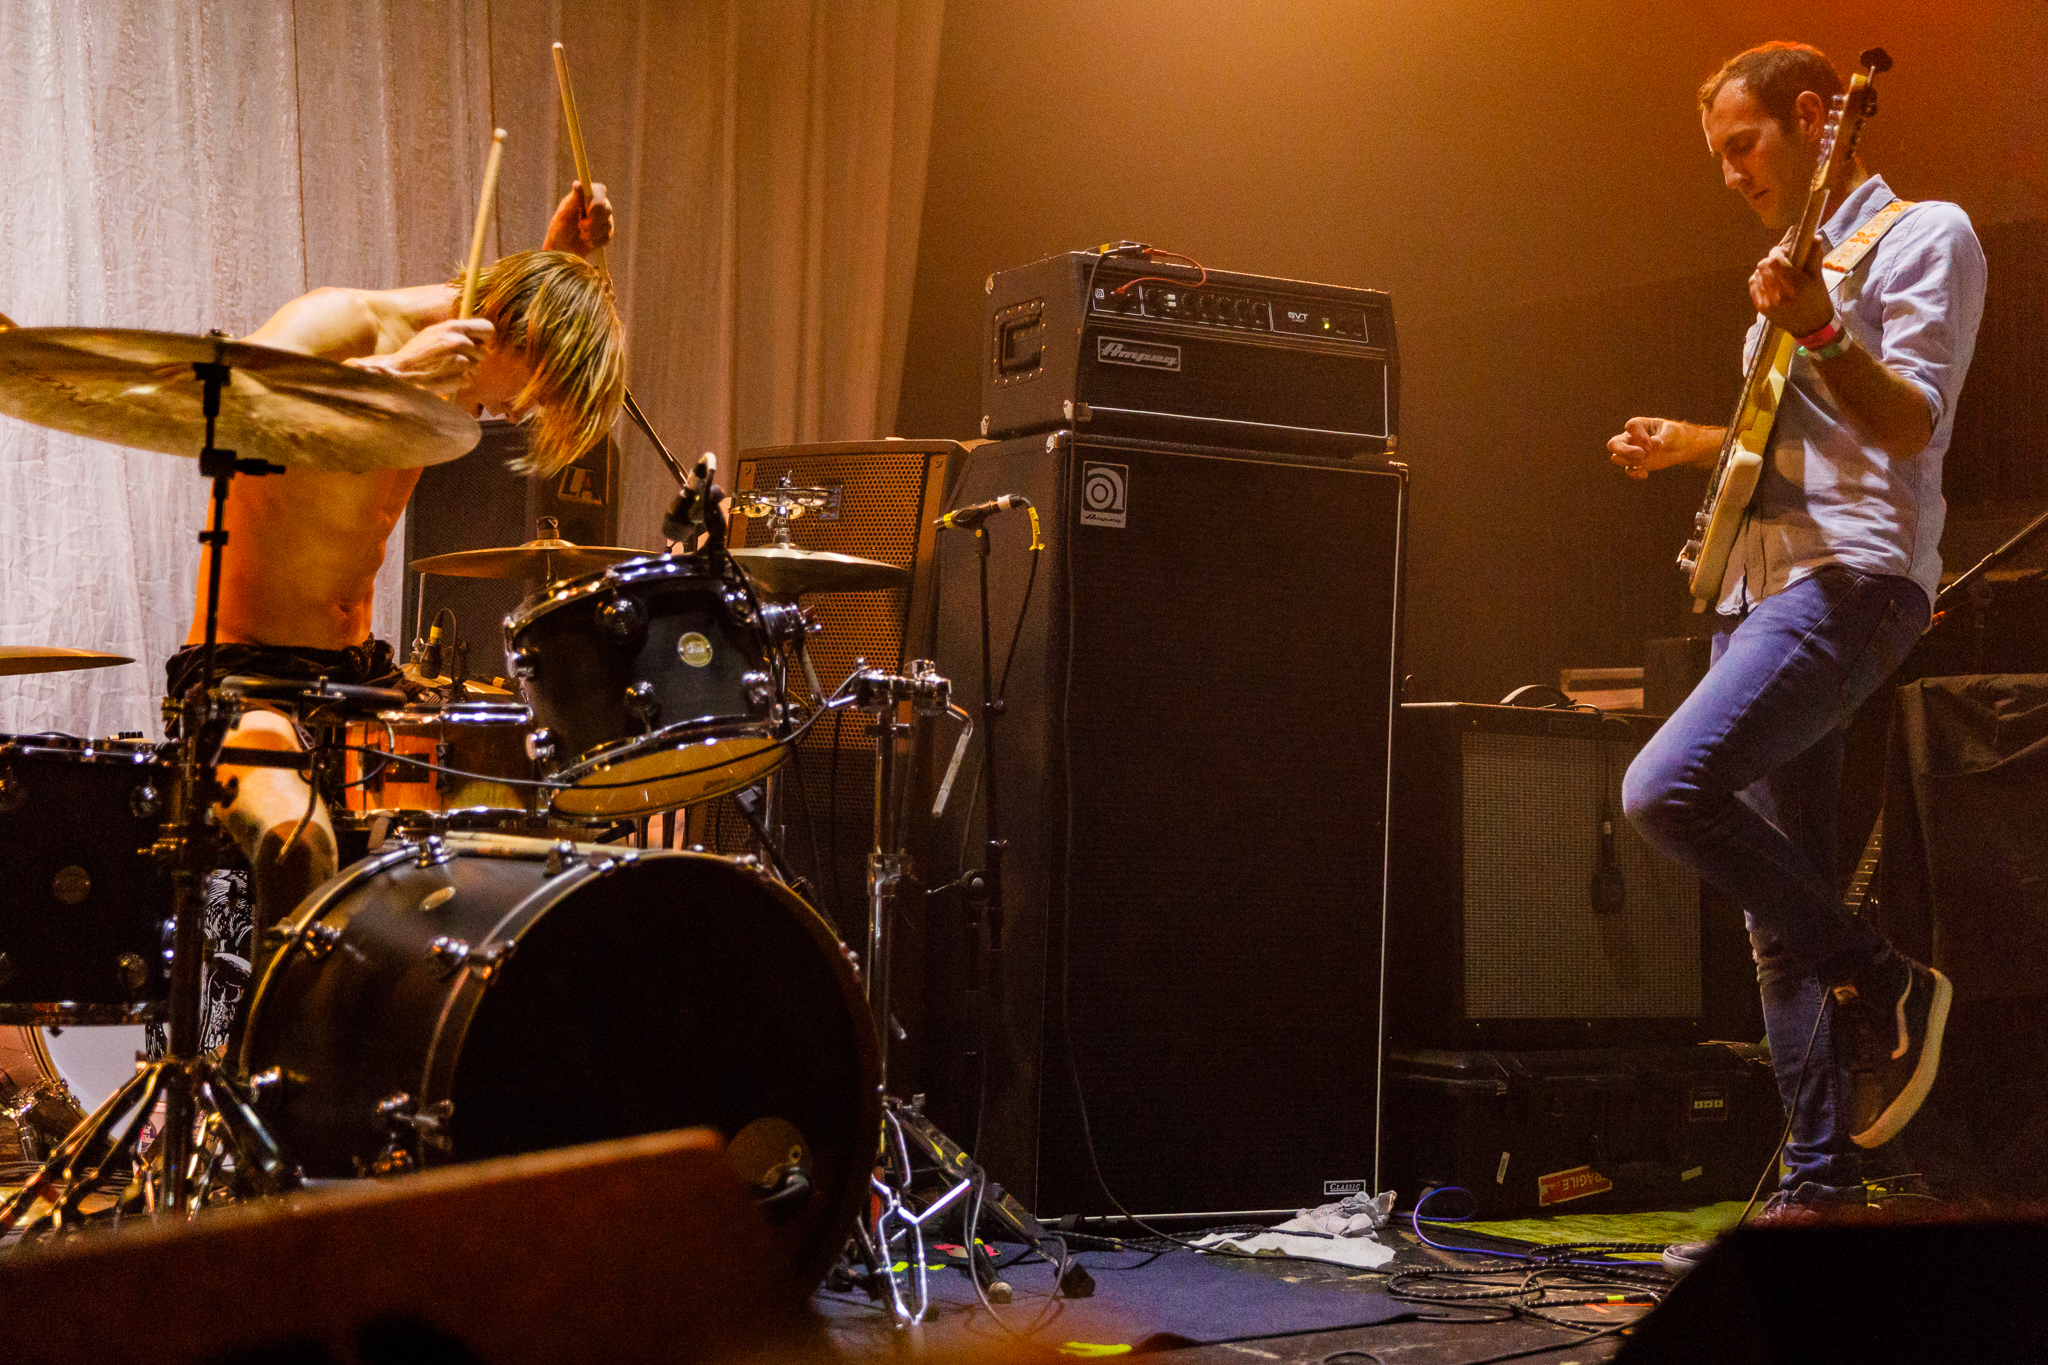 Preoccupations performing at Hopscotch Music Festival 2017 in Raleigh, NC - 9/8/2017 (photo by Matt Condon / @arcane93)